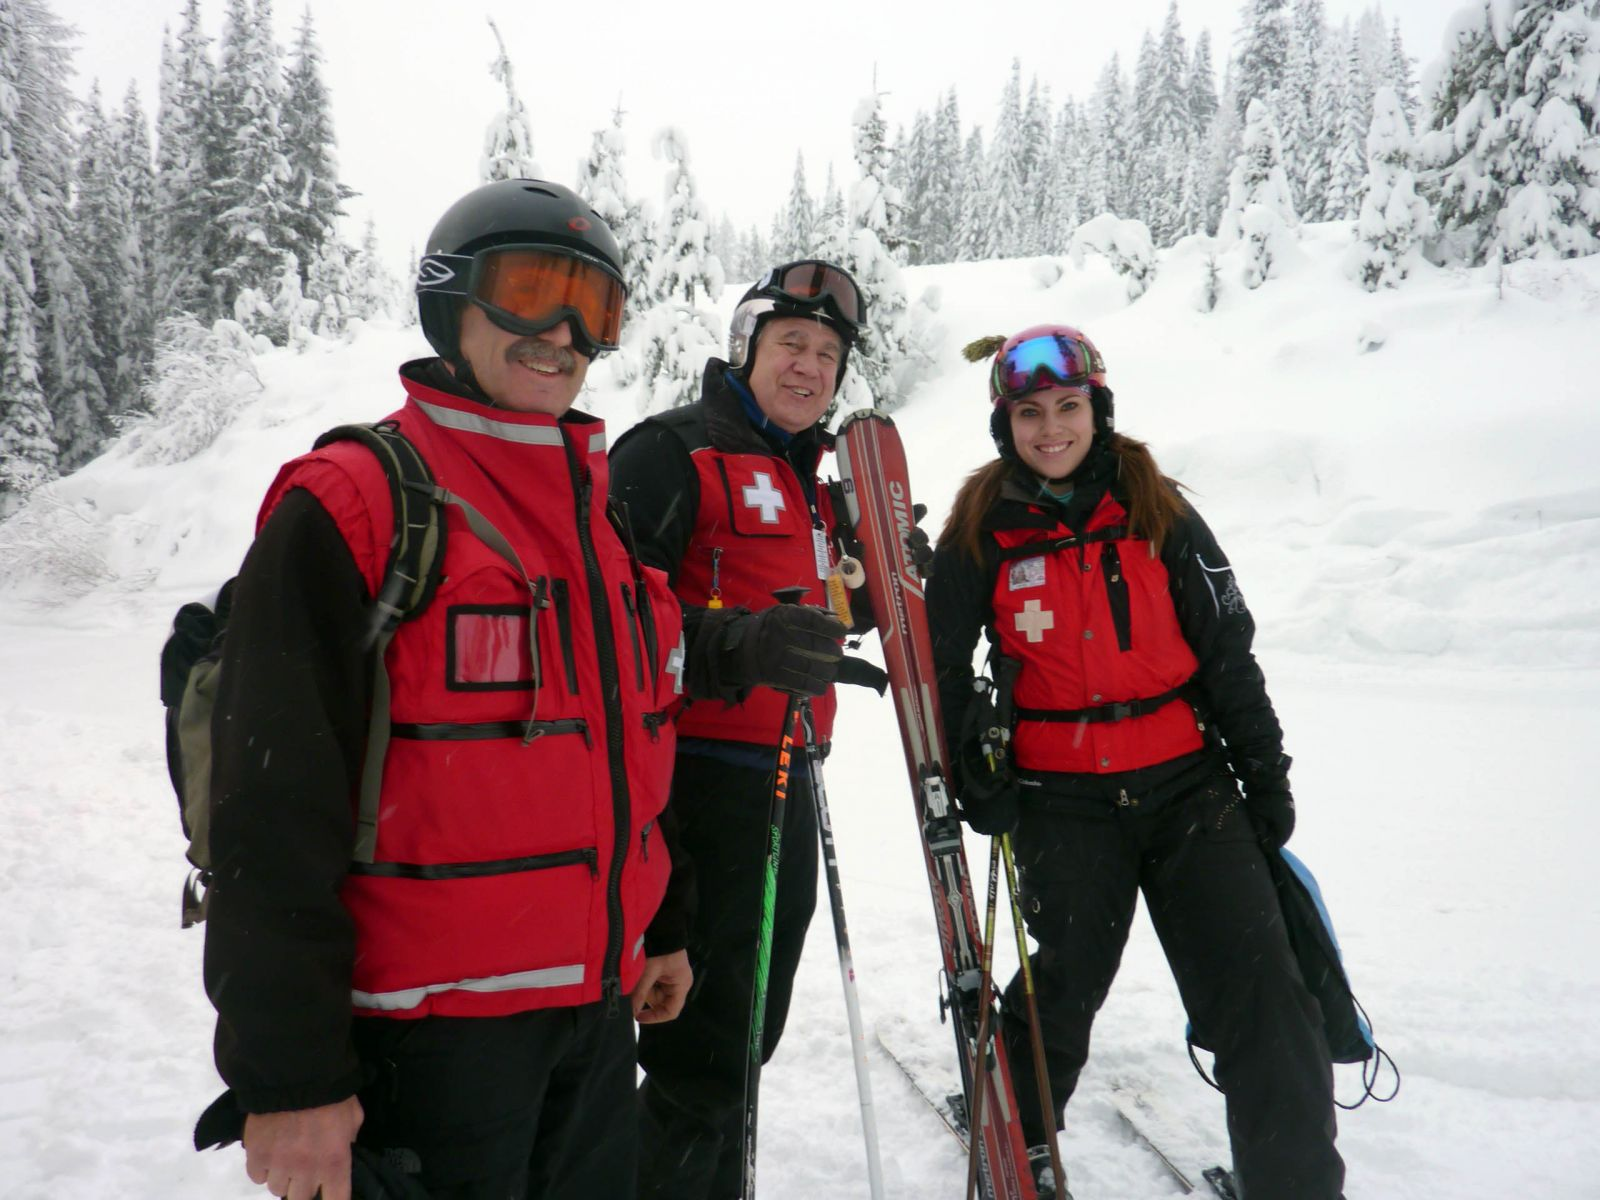 Mountain safety at Lookout Pass